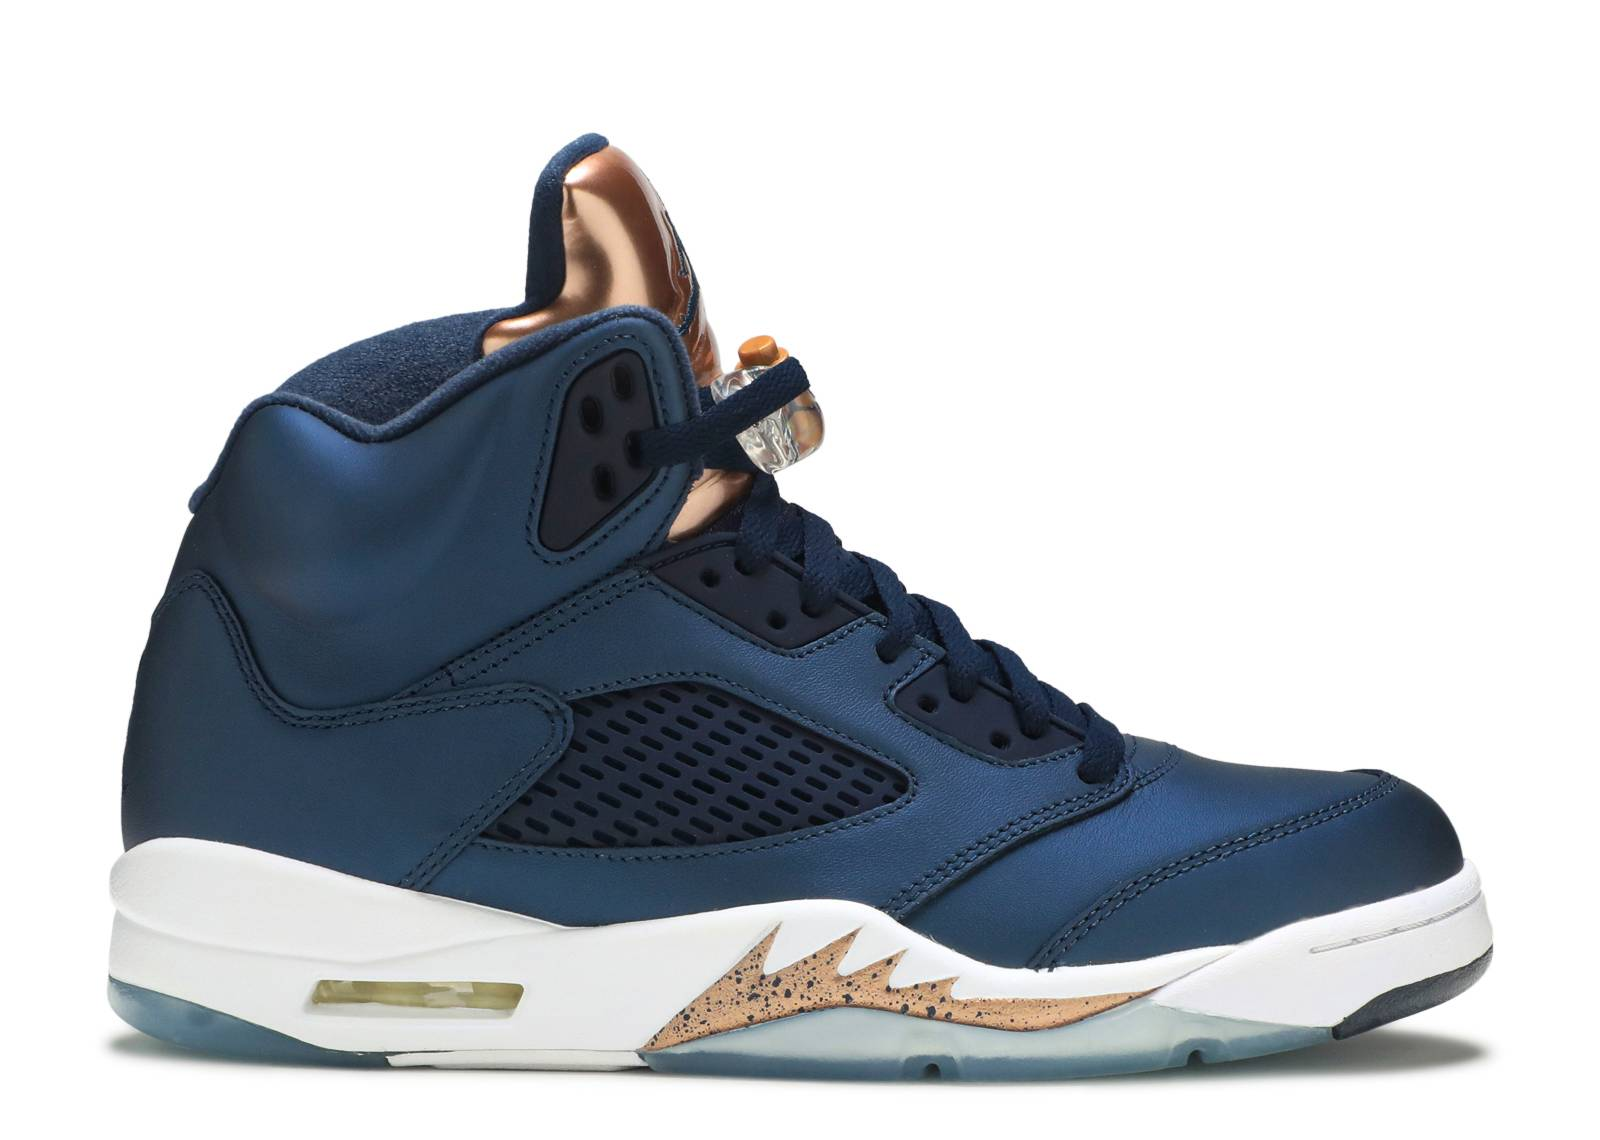 87a904096bfb1d Air Jordan 5 Retro